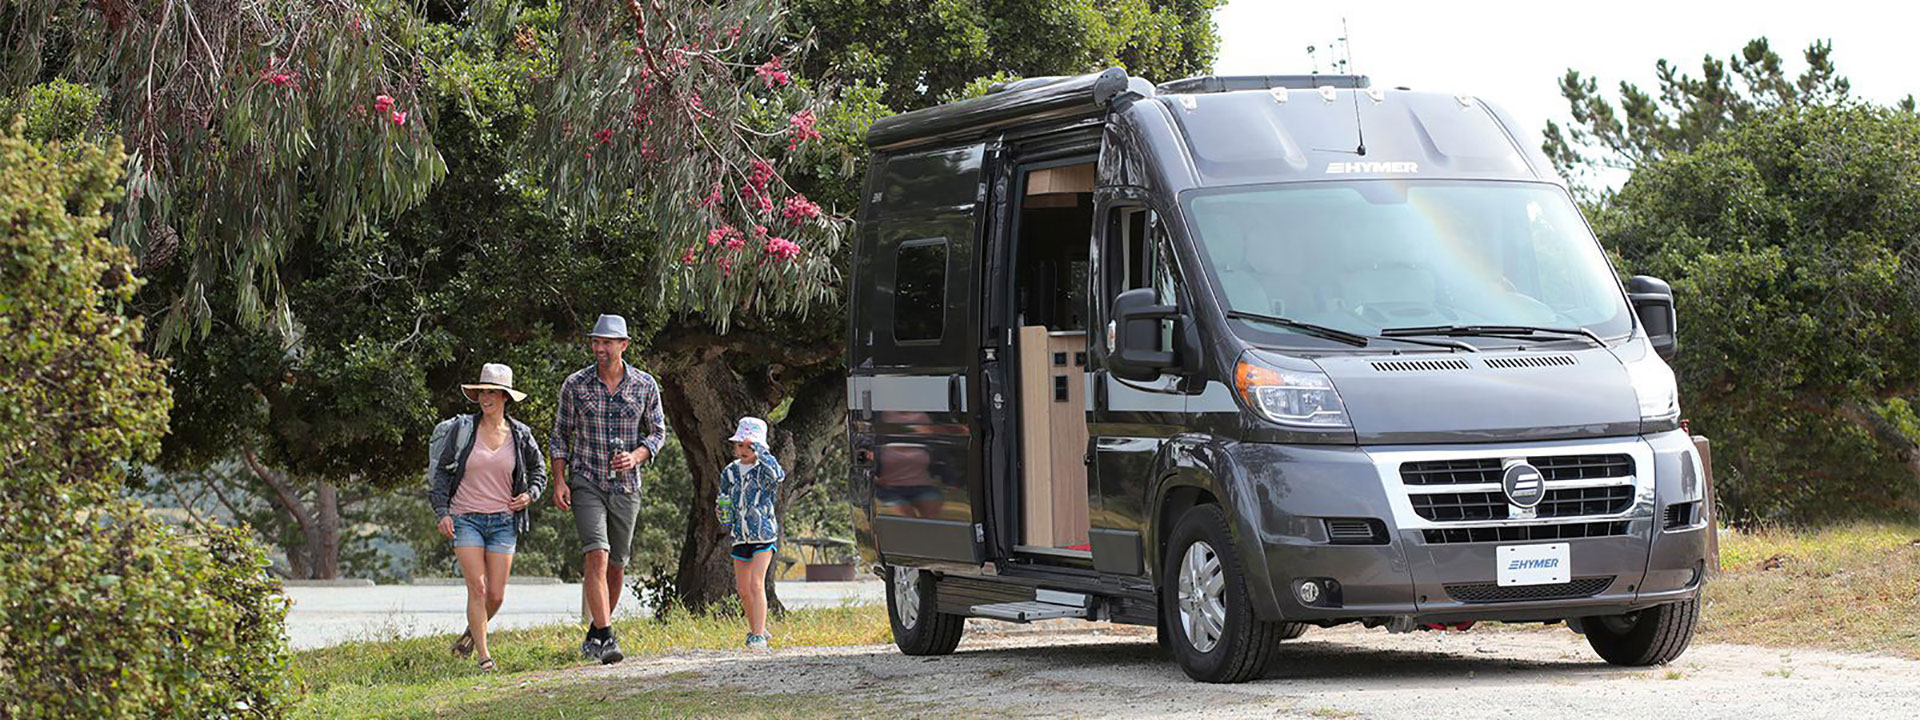 Super Erwin Hymer Leads Canada In Class B Sales Rv Dealer News Home Interior And Landscaping Ponolsignezvosmurscom